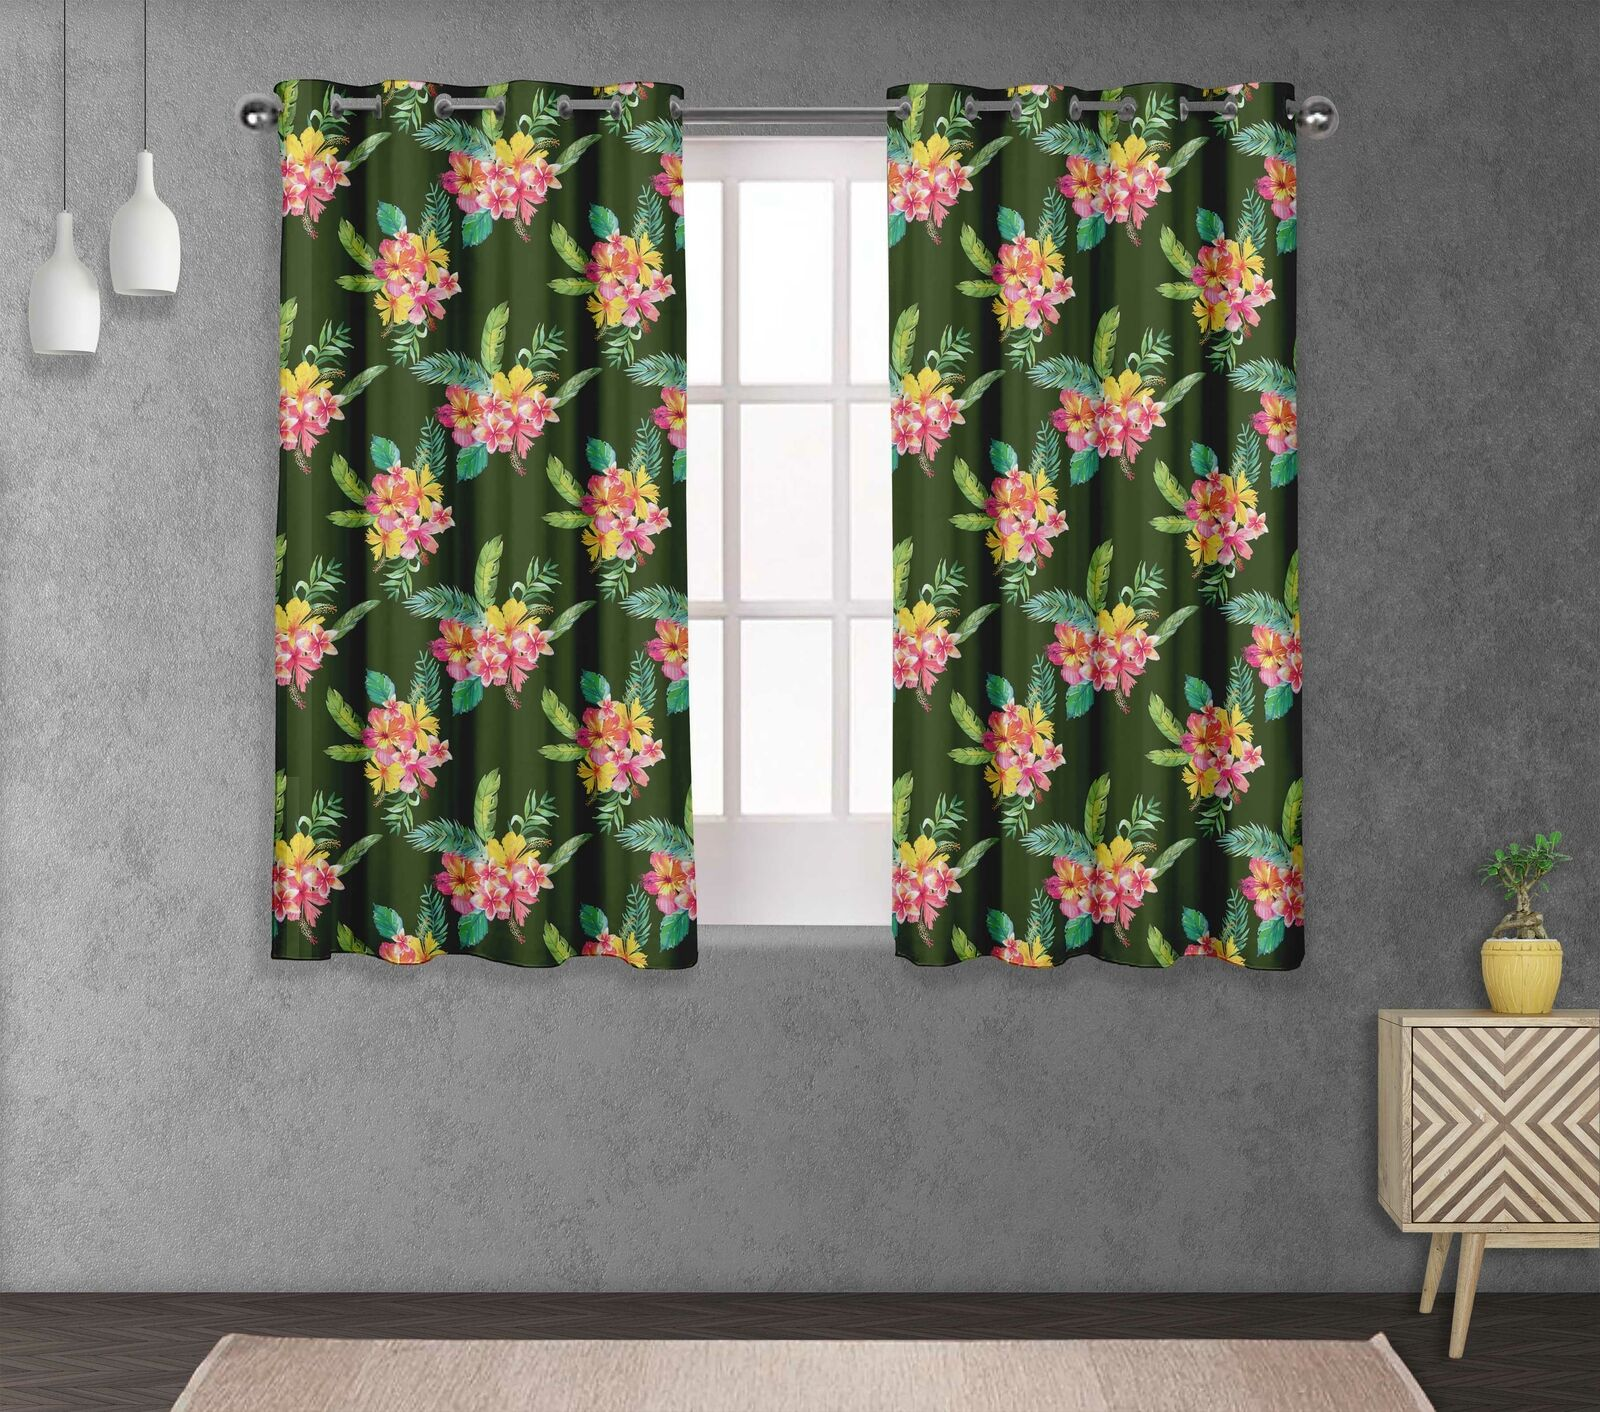 S4sassy Plumeria & Bedroom short & long Window  Eyelet Curtains -FL-650B